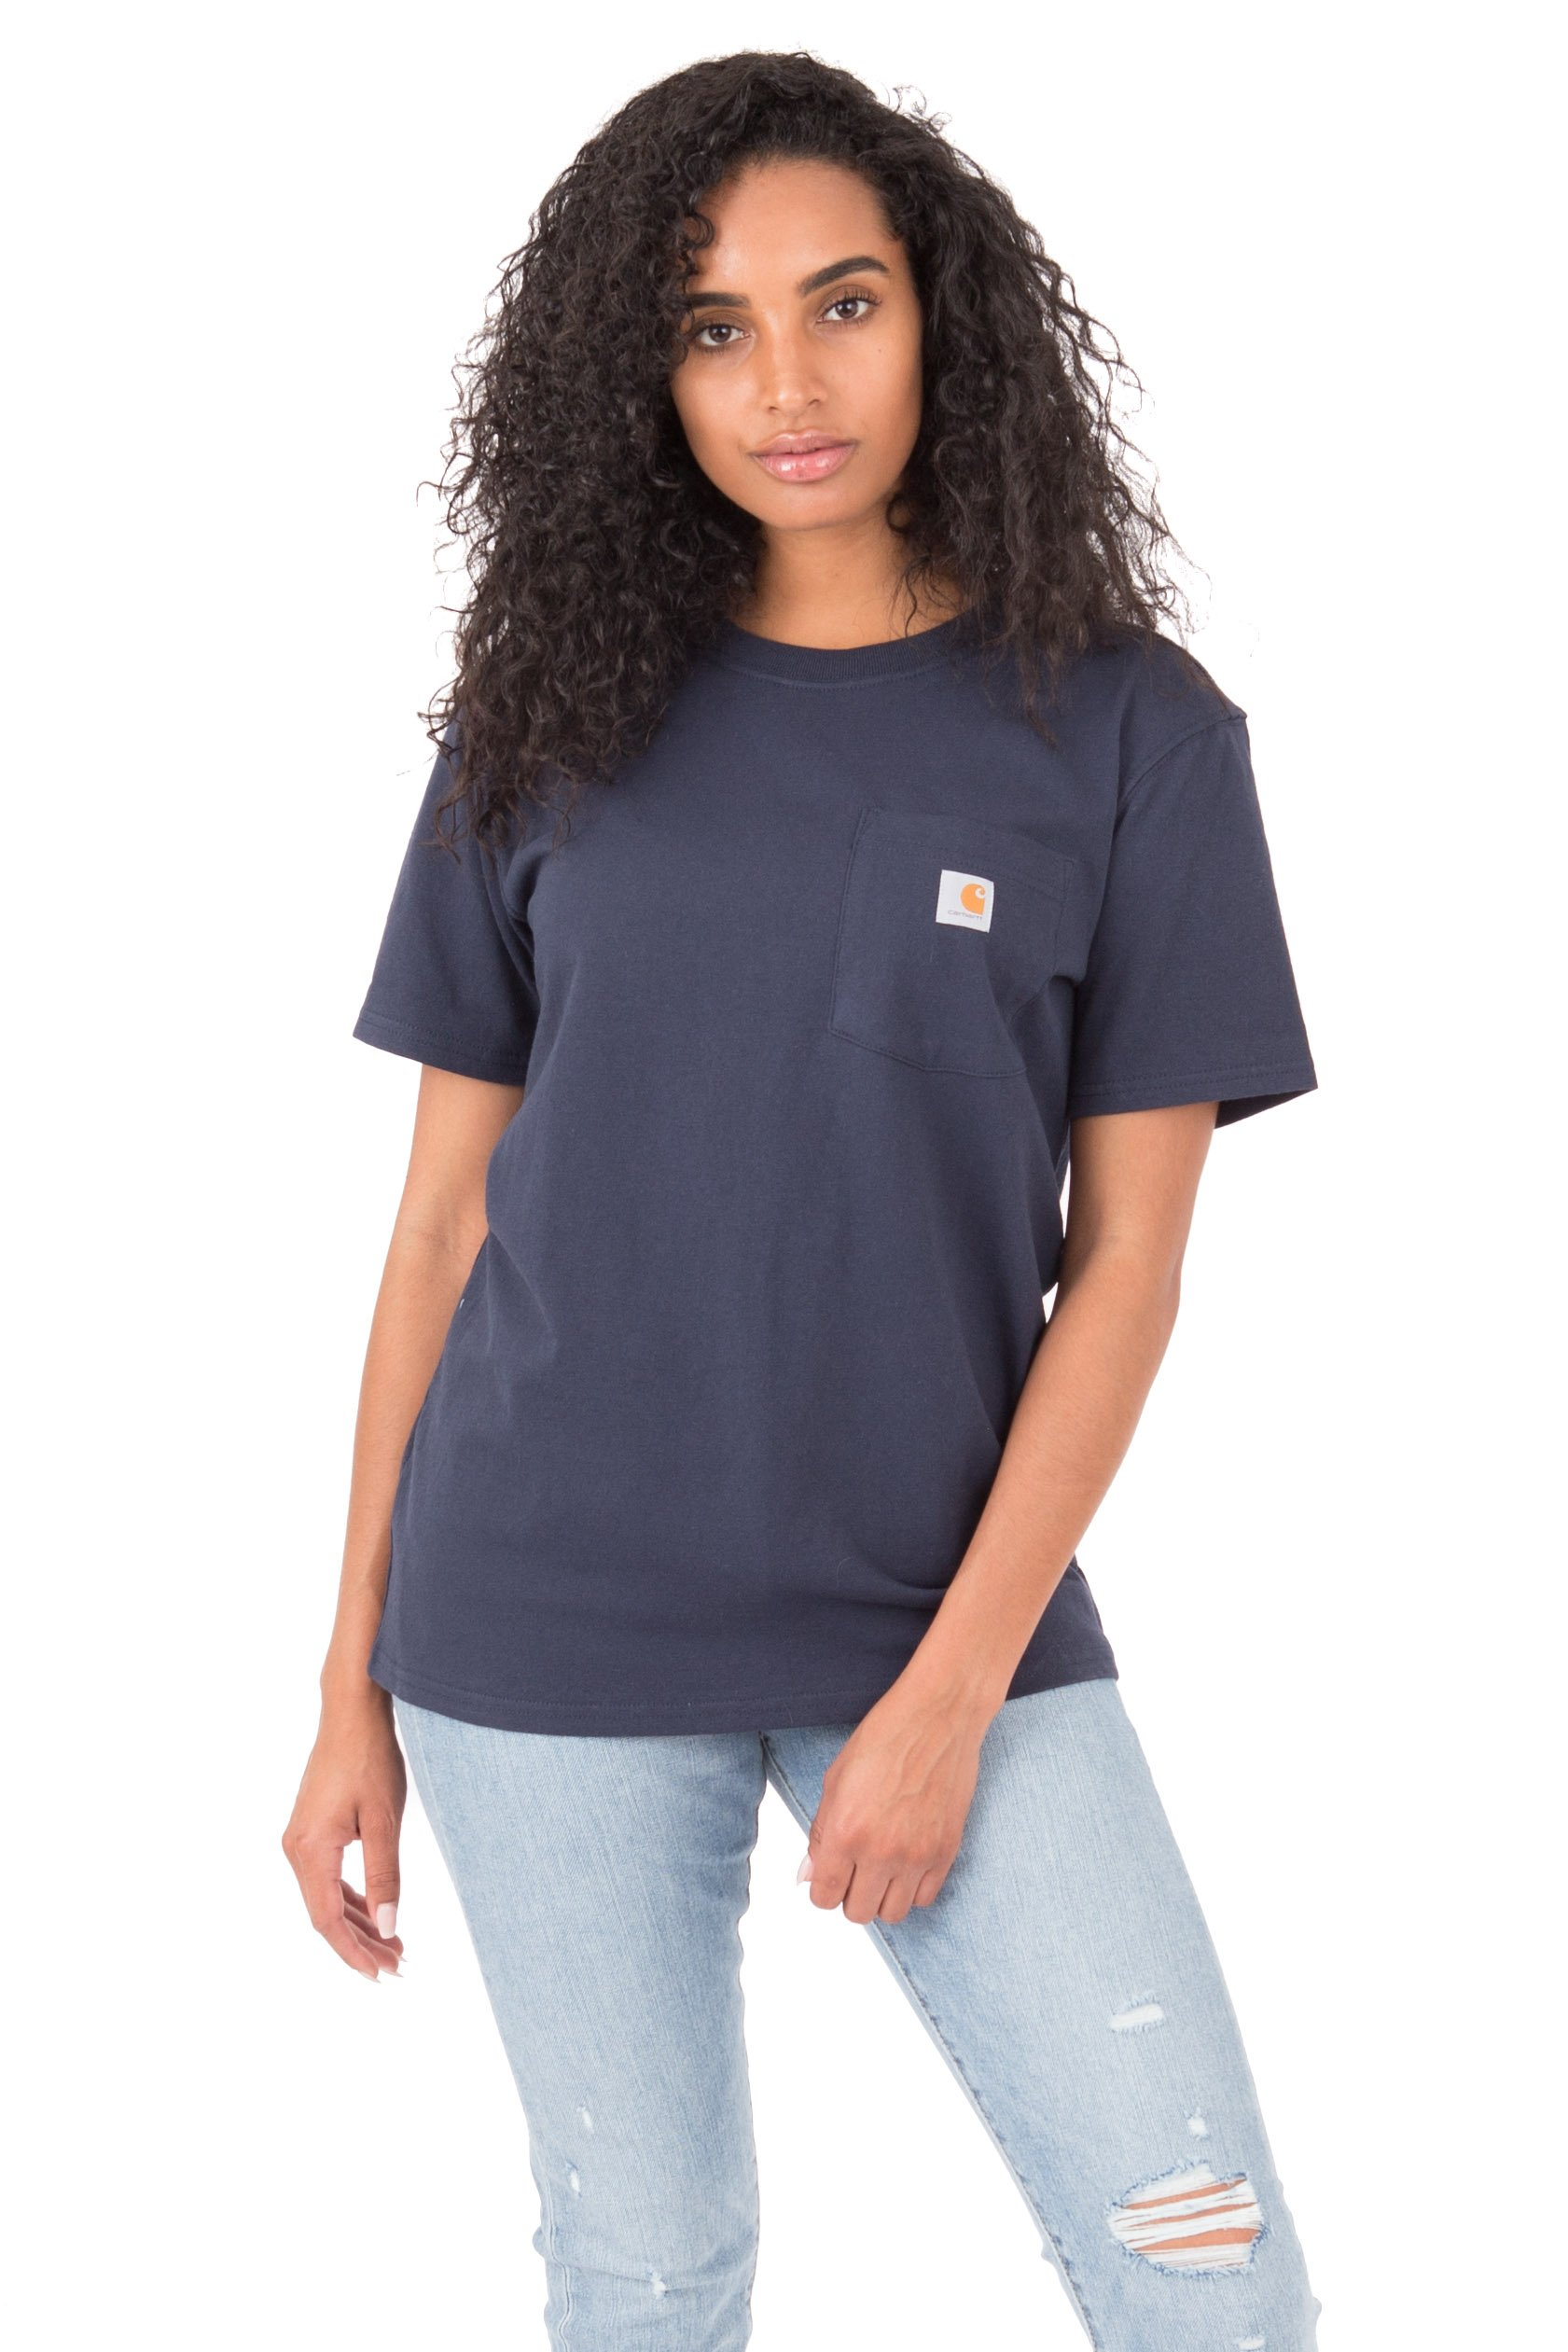 Carhartt Women's, (103067) WK87 Workwear Pocket T-Shirt - Navy